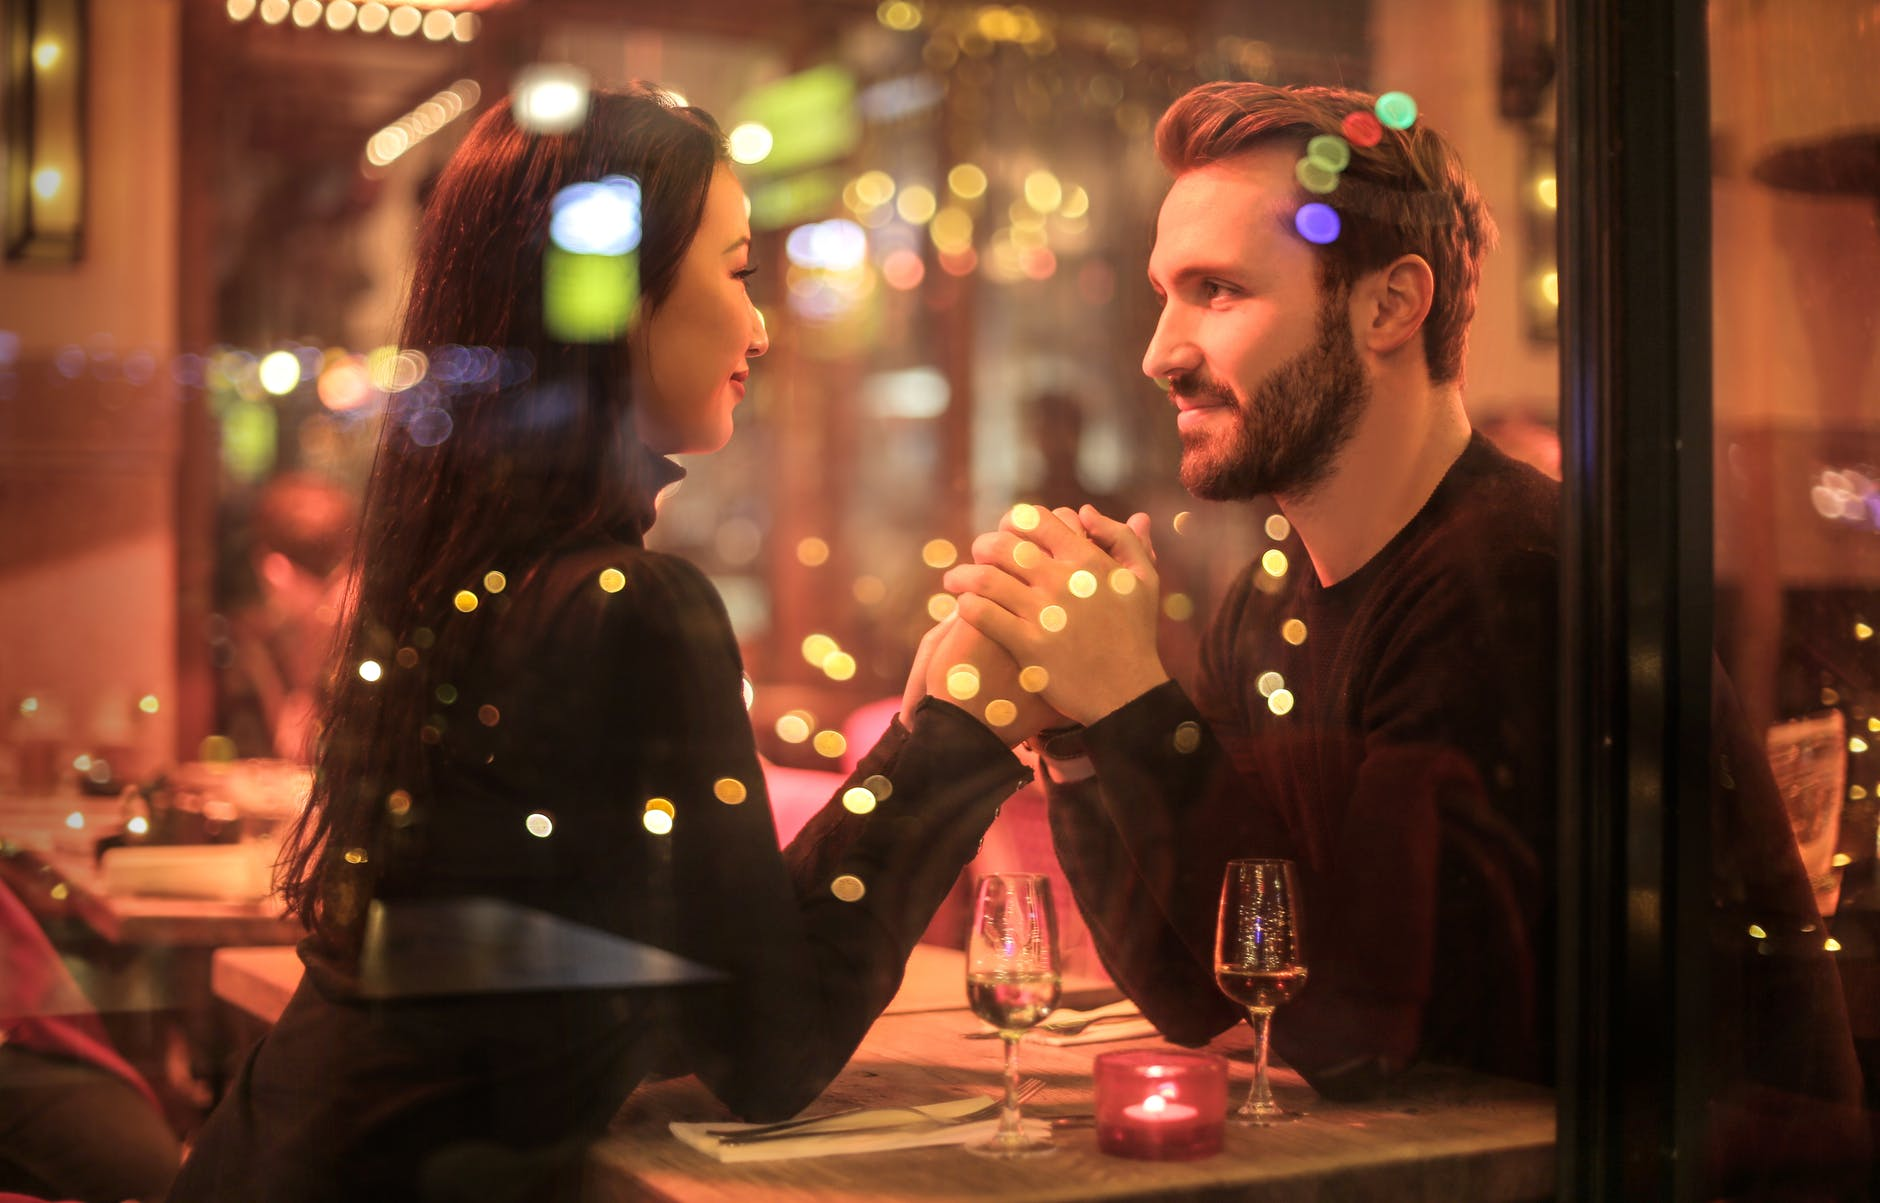 10 Qualities to Check Before Making Him Your Boyfriend